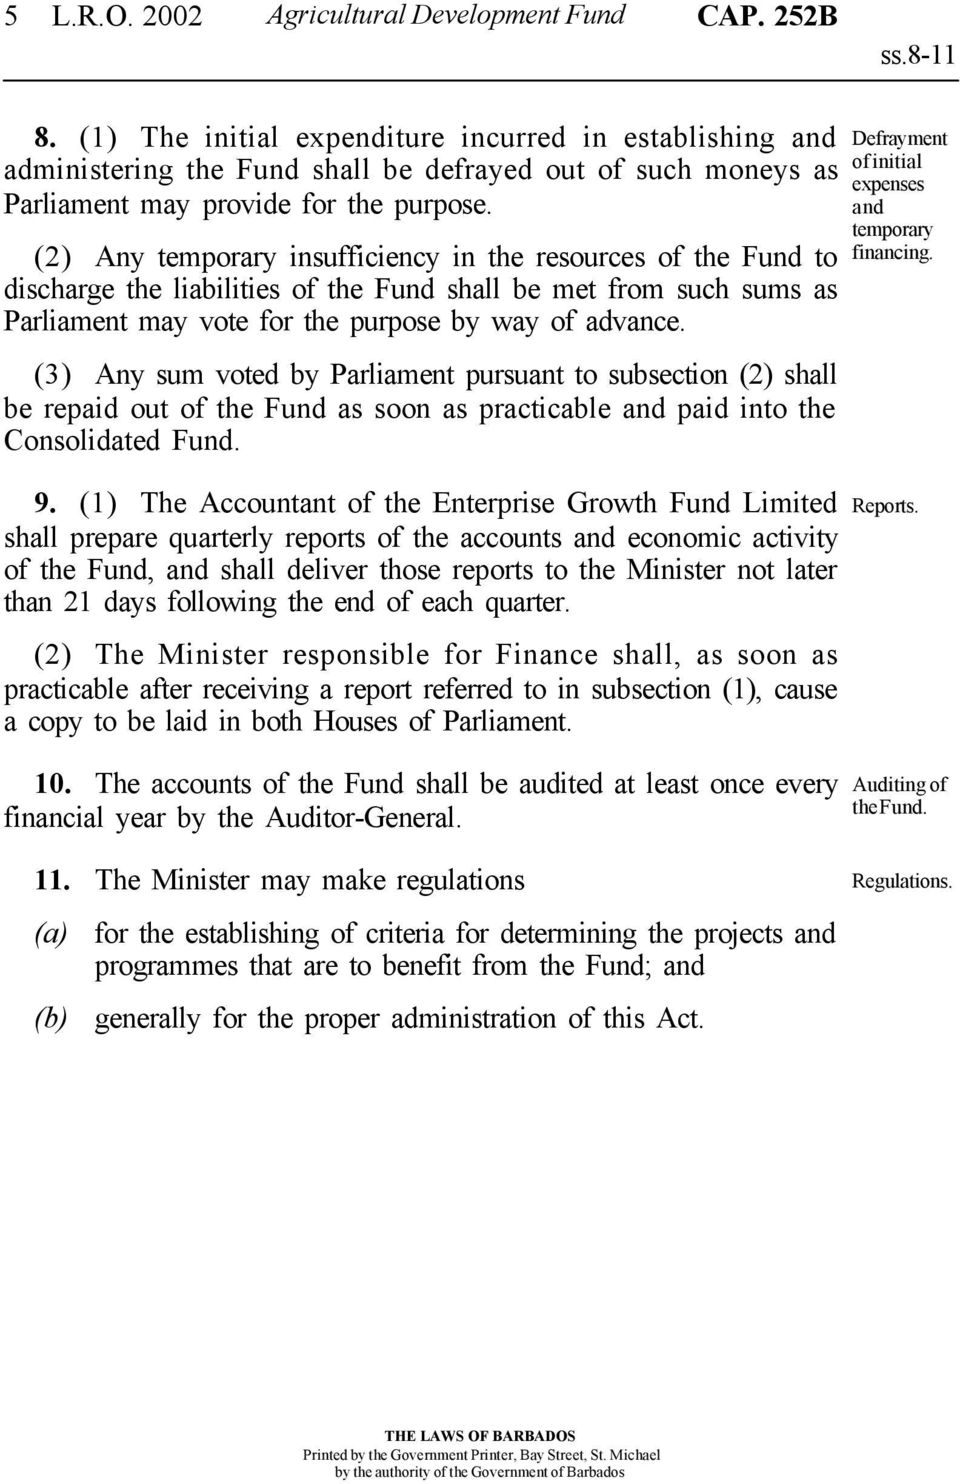 (2) Any temporary insufficiency in the resources of the Fund to discharge the liabilities of the Fund shall be met from such sums as Parliament may vote for the purpose by way of advance.